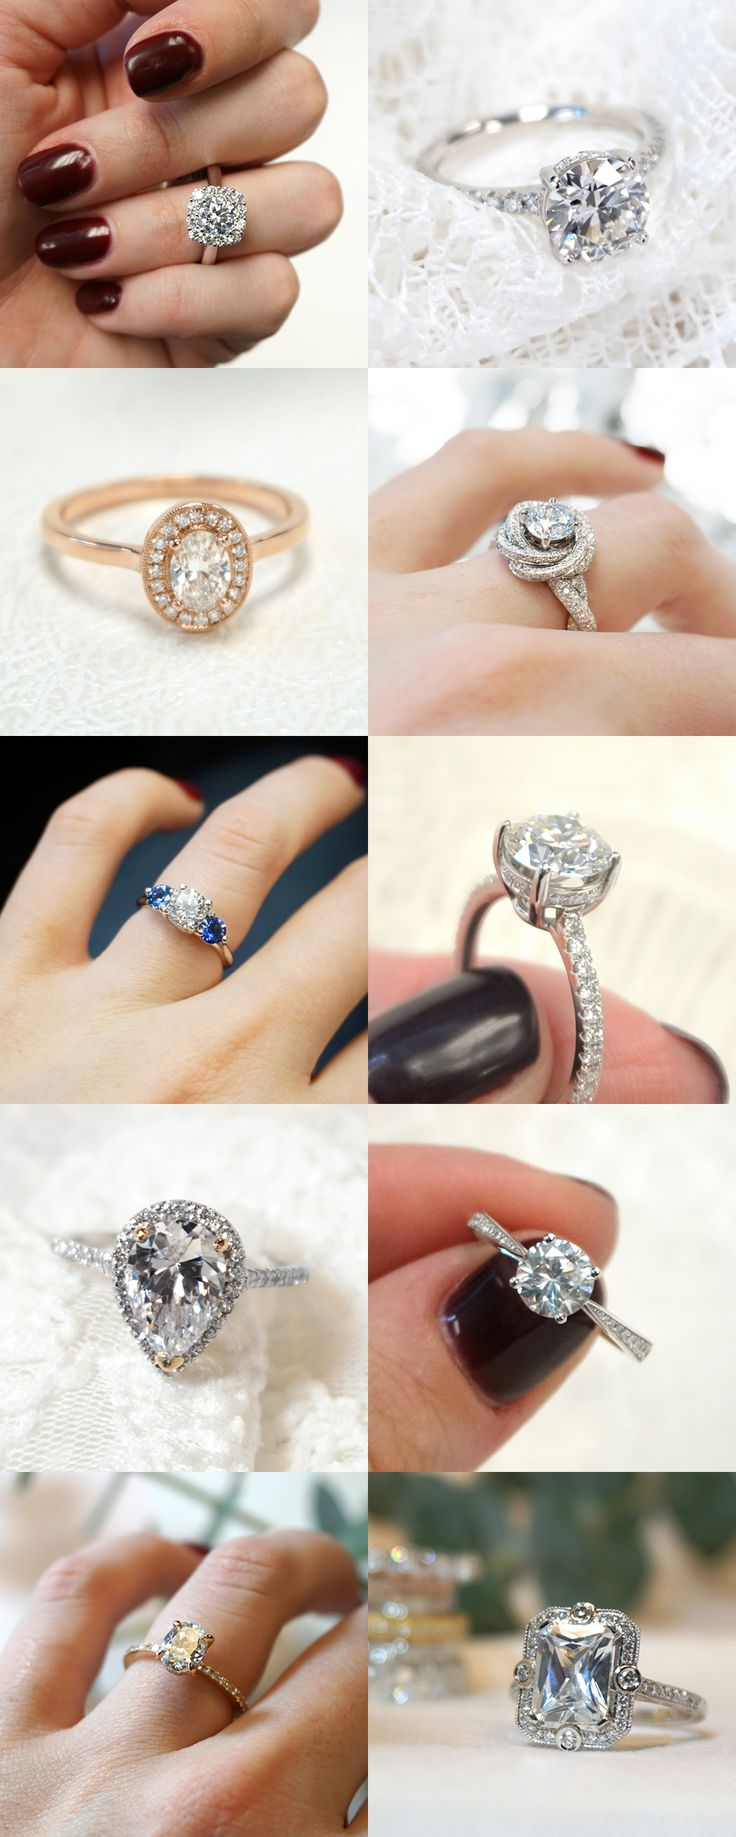 Tap For More And Discover 1,000+ Unique Engagement Rings Customize Or Design  Your